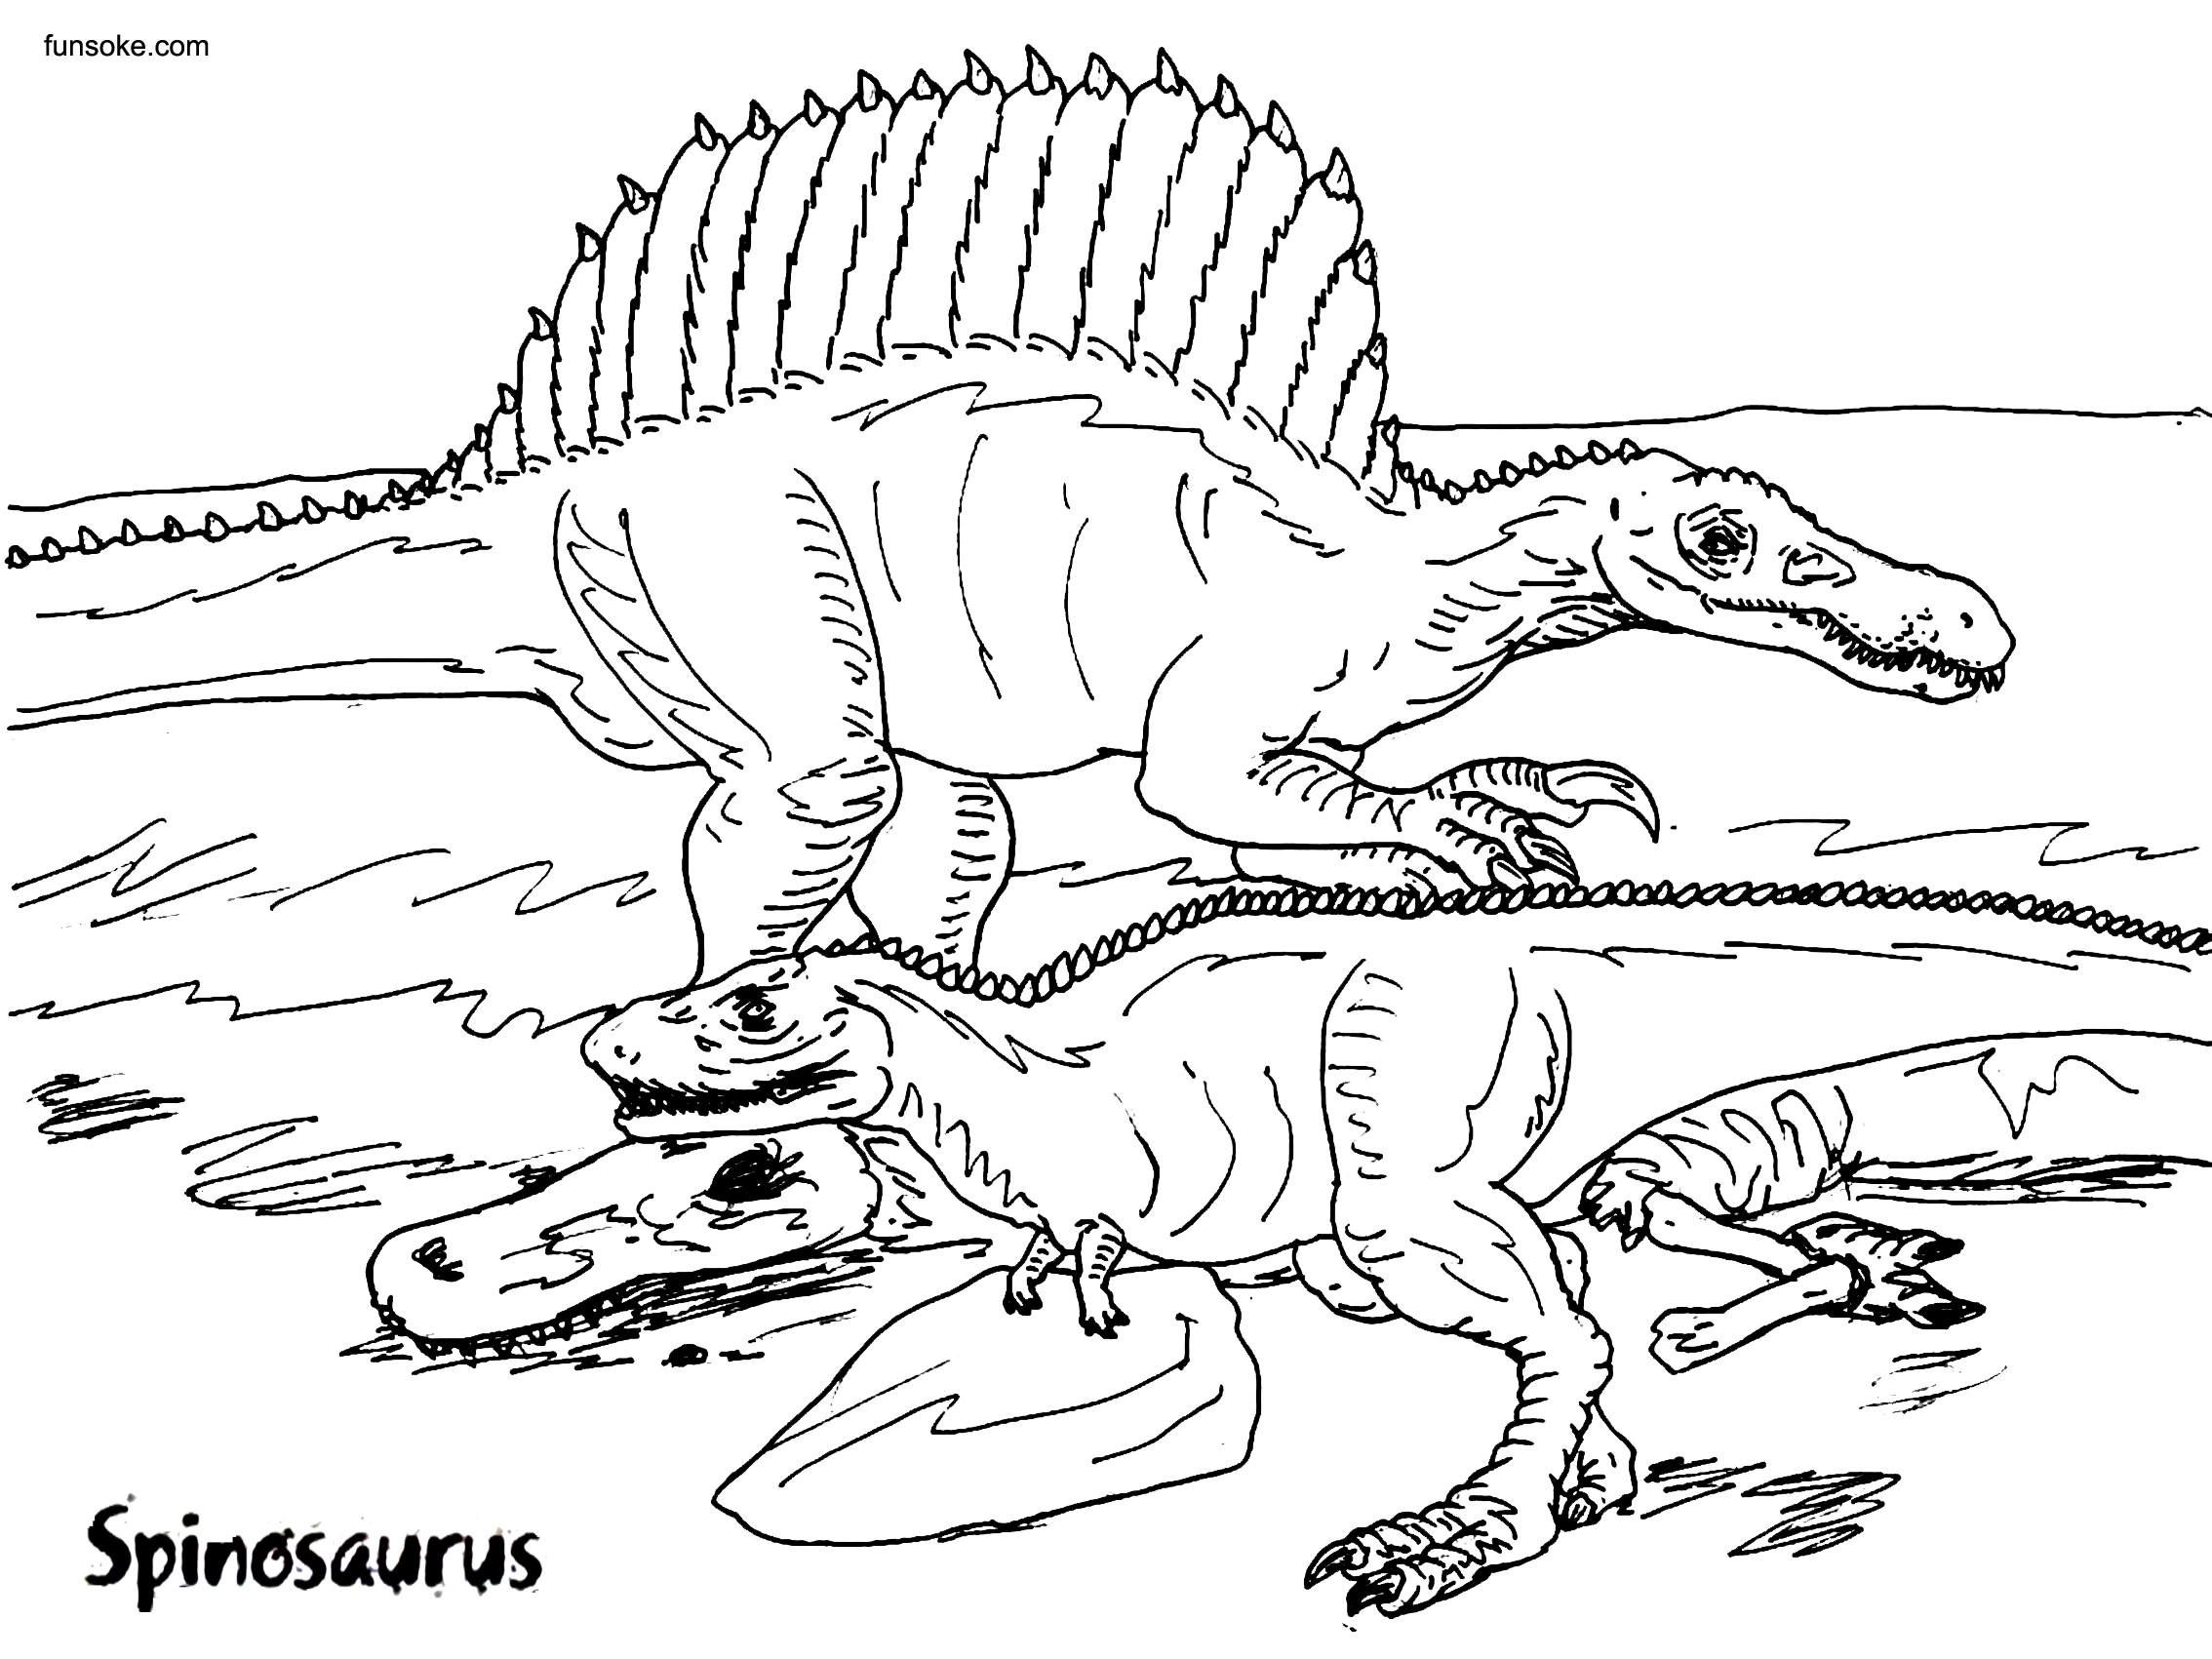 spinosaurus coloring pictures free printable spinosaurus coloring pages funsoke pictures spinosaurus coloring